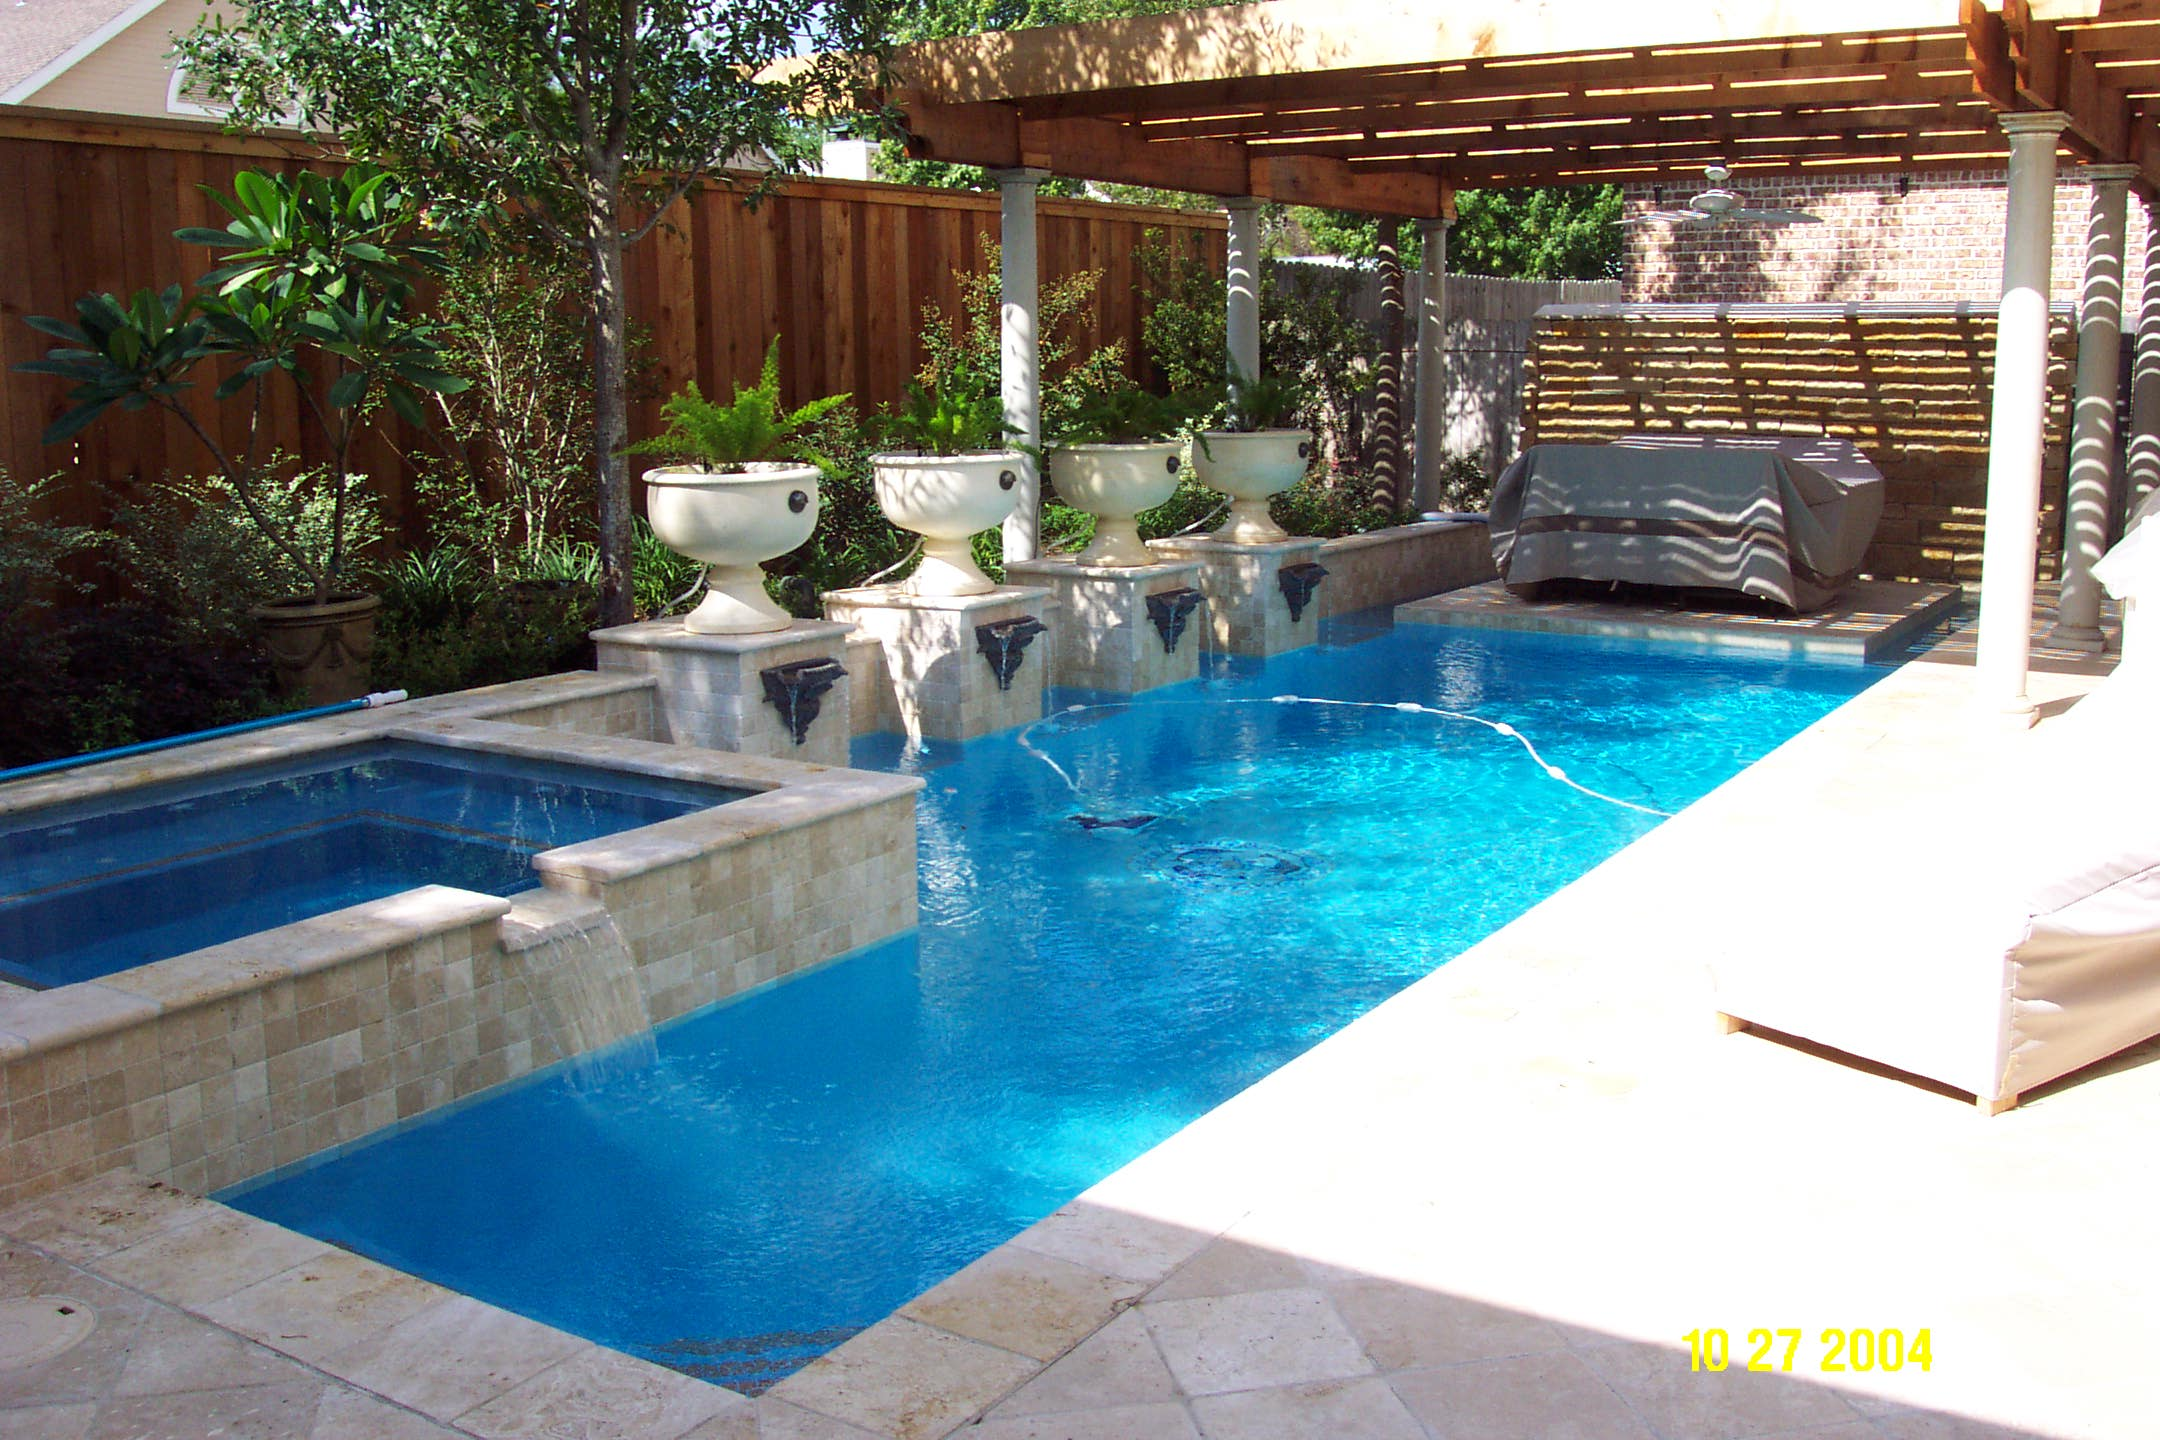 Pool Design for Small Yards | HomesFeed